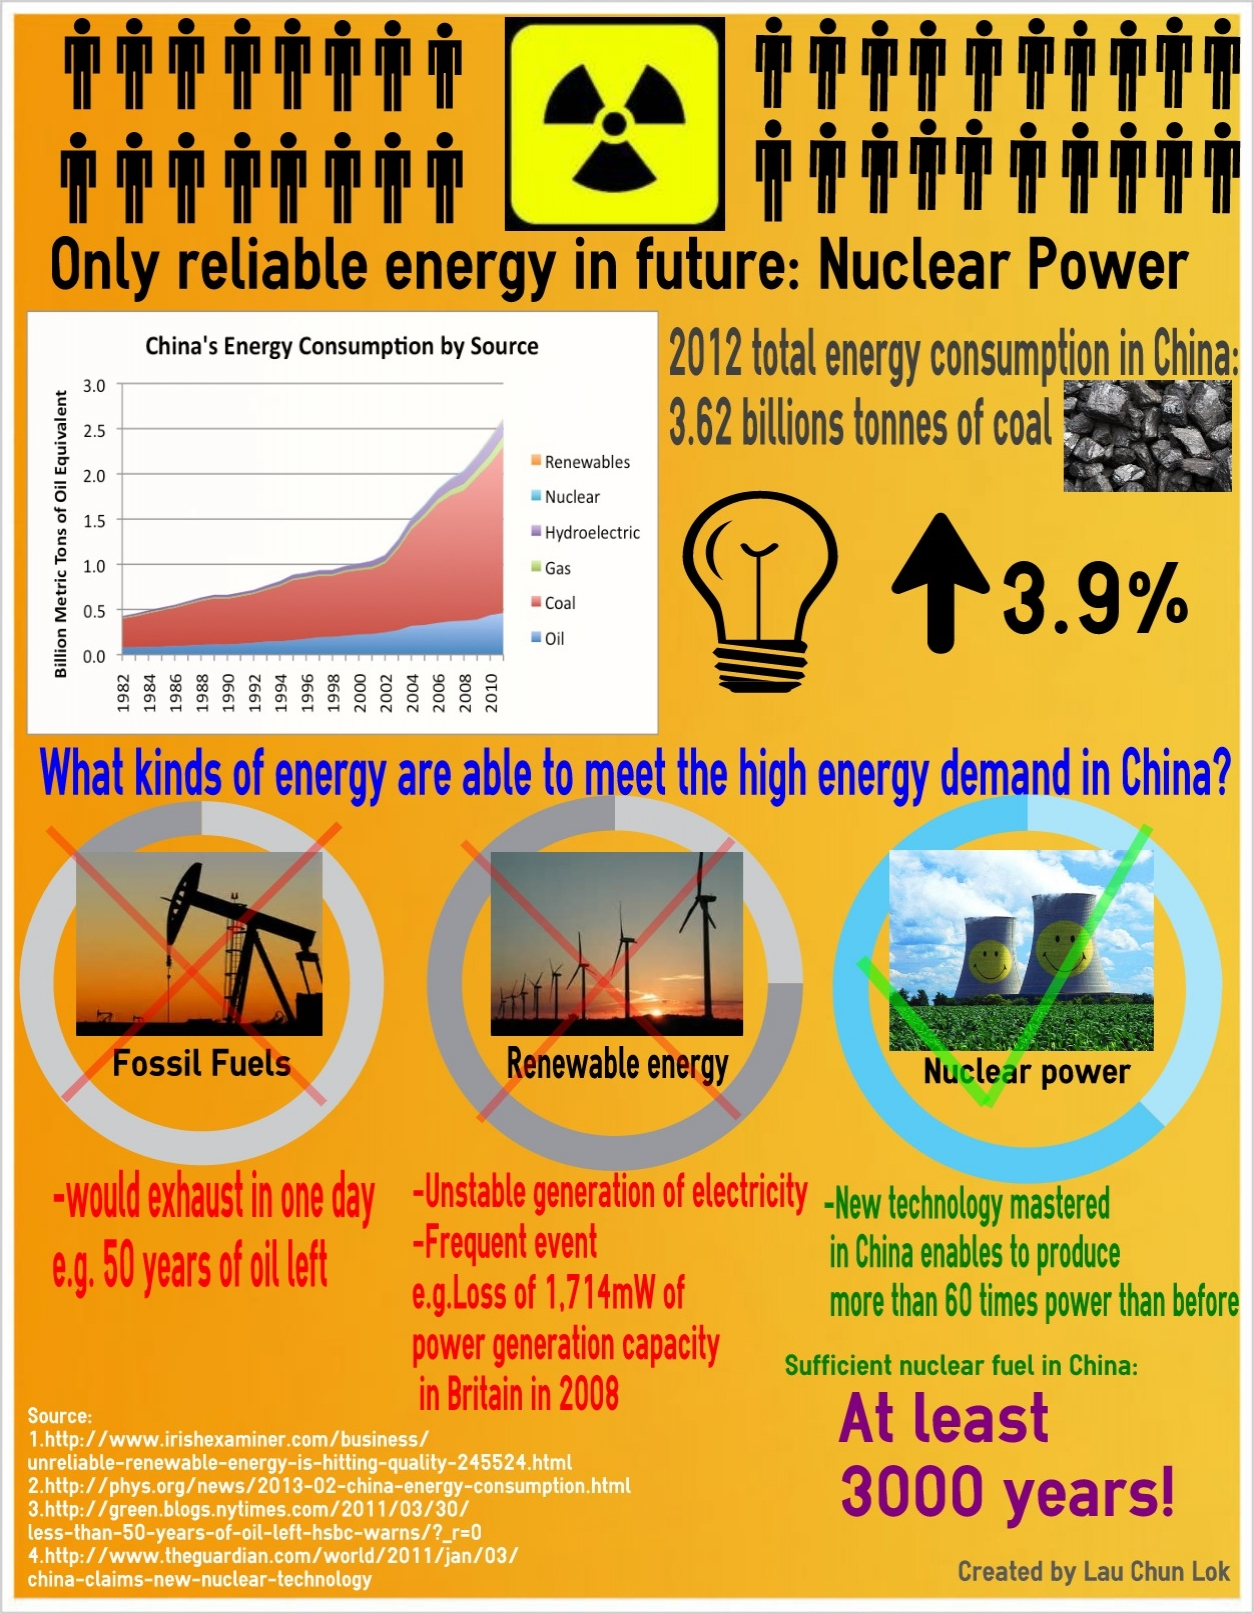 welcome to ben s life infographic share one of the points in my s3 amazonaws com easel ly all easels 239873 nuclearpower image jpg